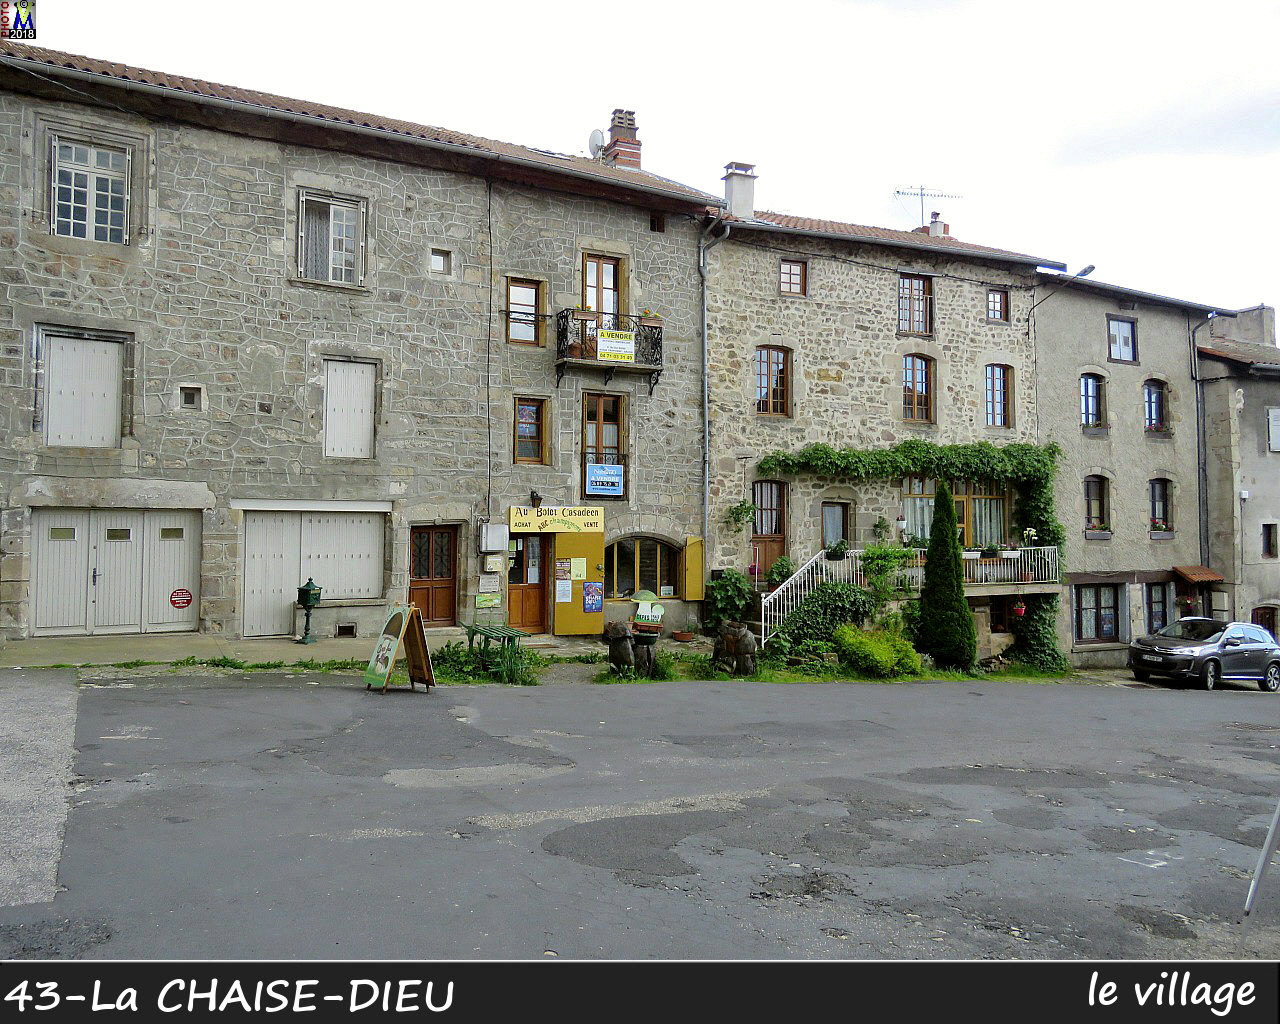 43CHAISE-DIEU_village_118.jpg